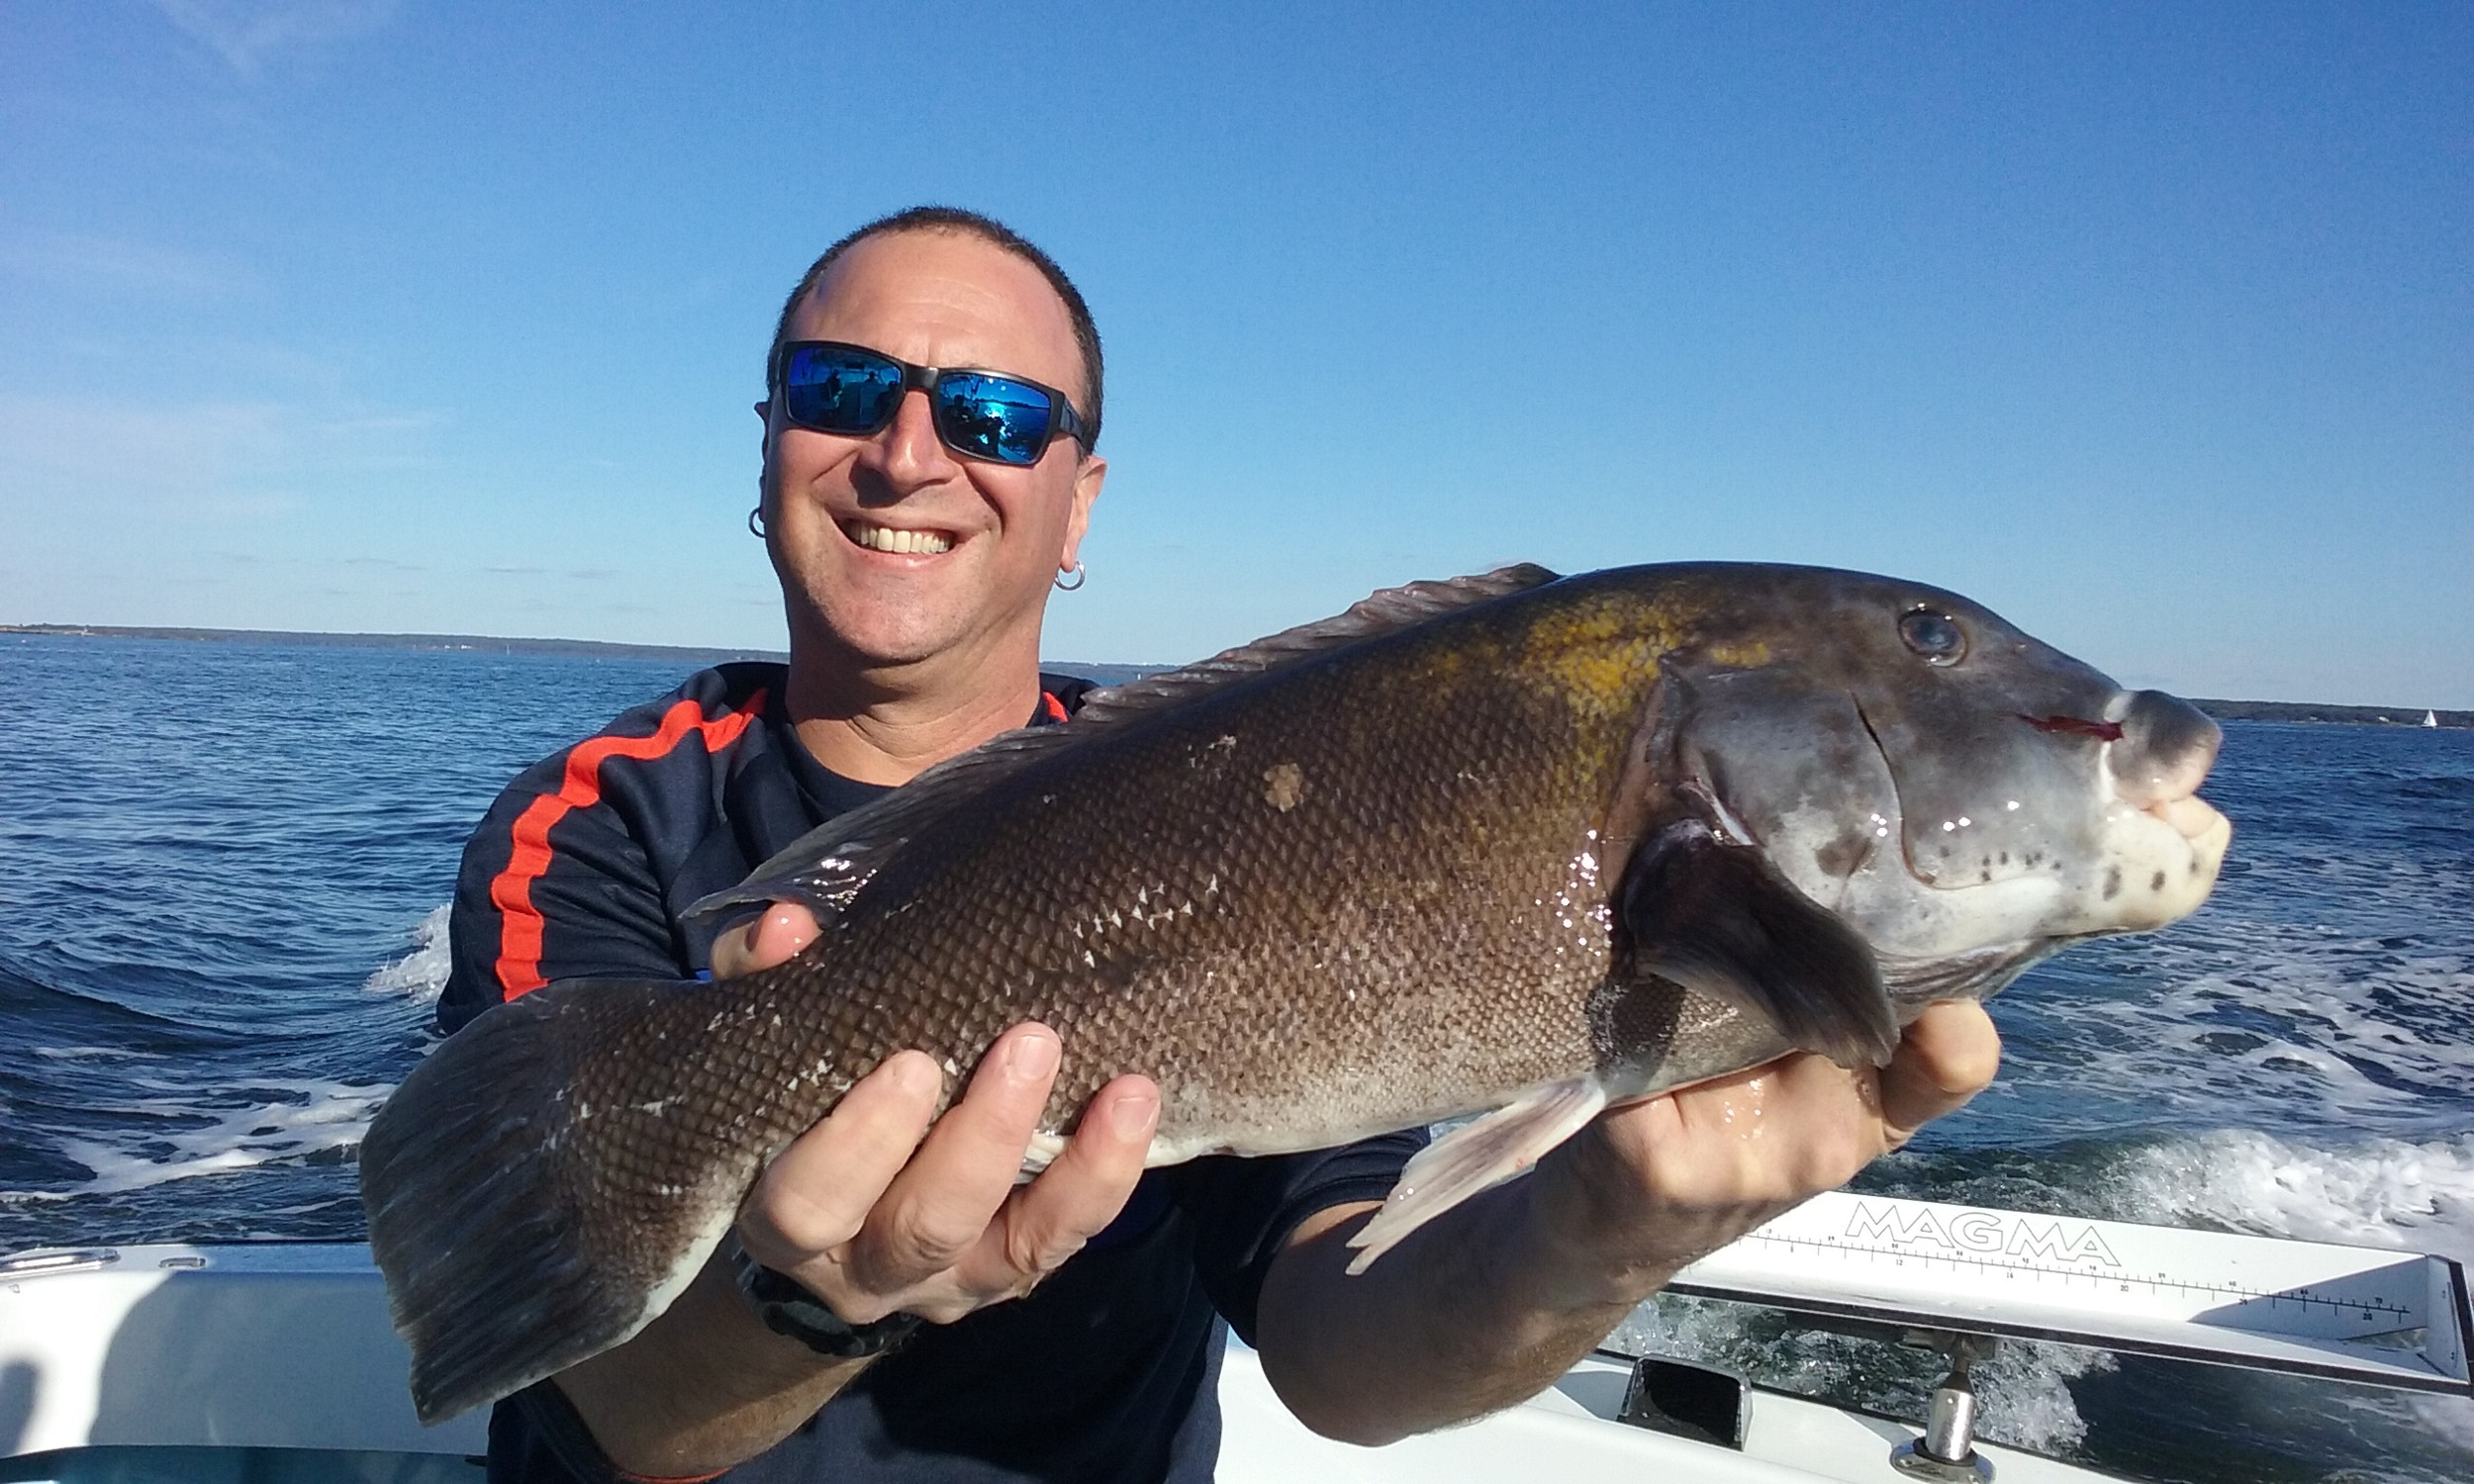 Steve Brustein of Portland, Maine (and West Warwick) with a spring tautog caught with a green crab at General Rock, North Kingstown in the West Passage of Narragansett Bay.